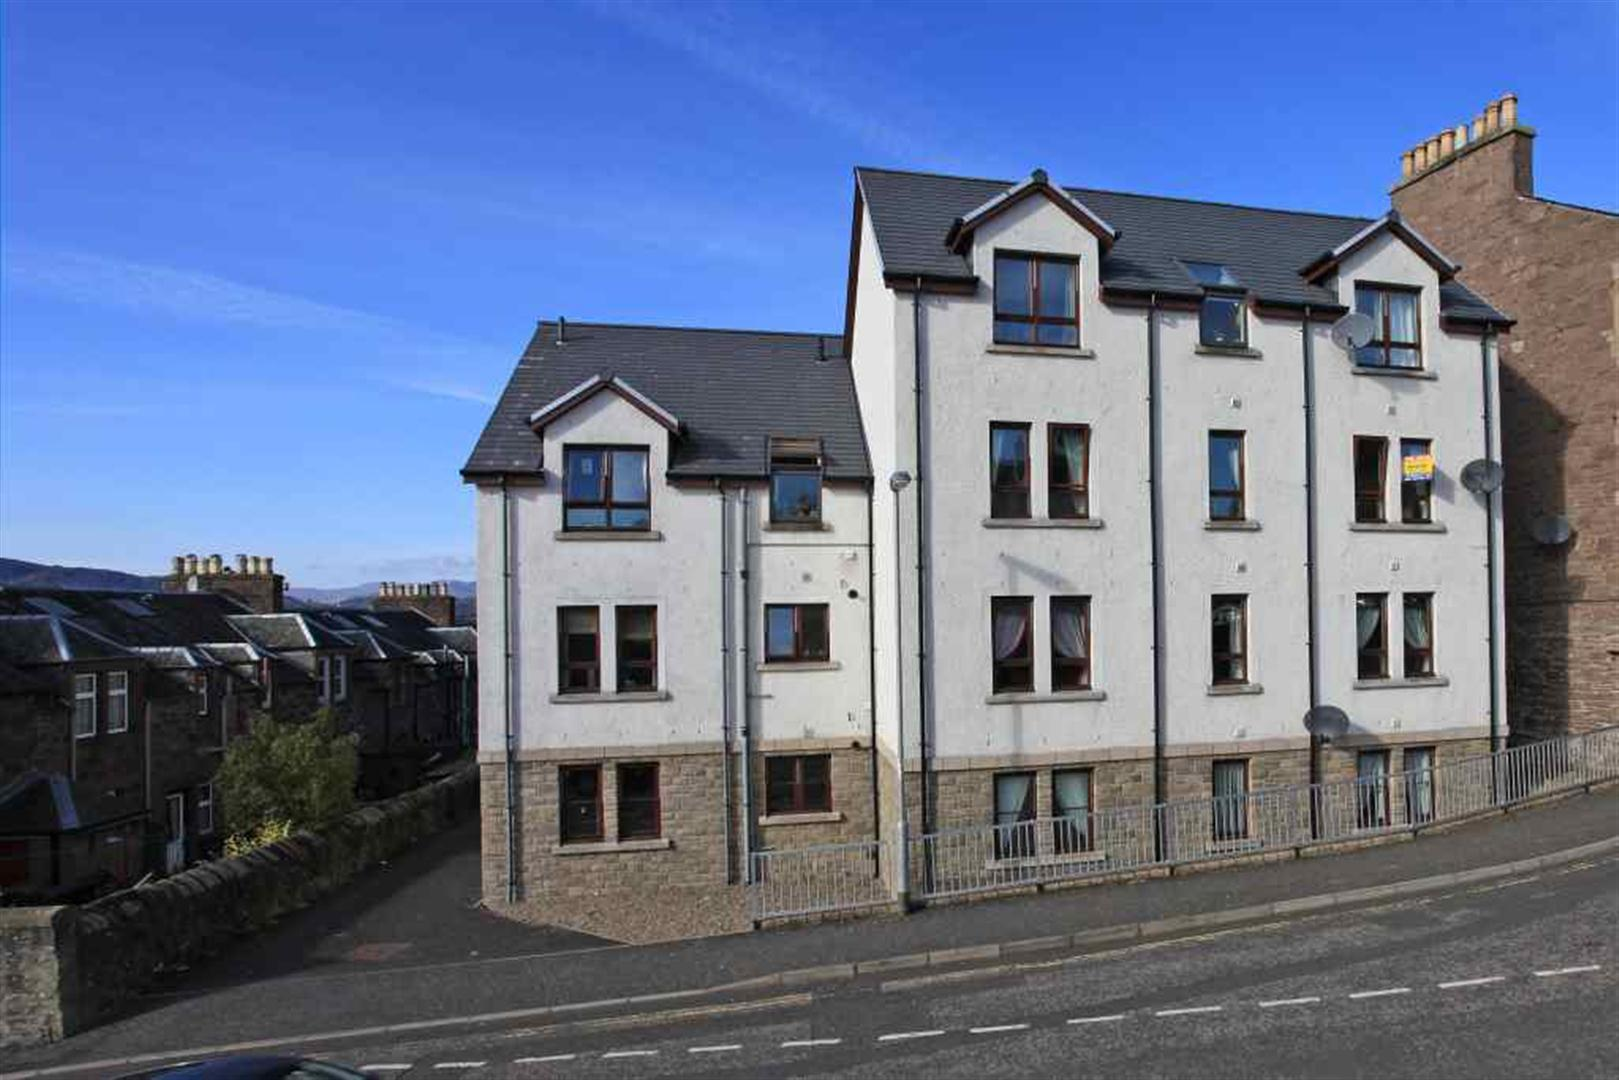 3, Johnstone Court, Church Street, Crieff, PH7 3BA, UK